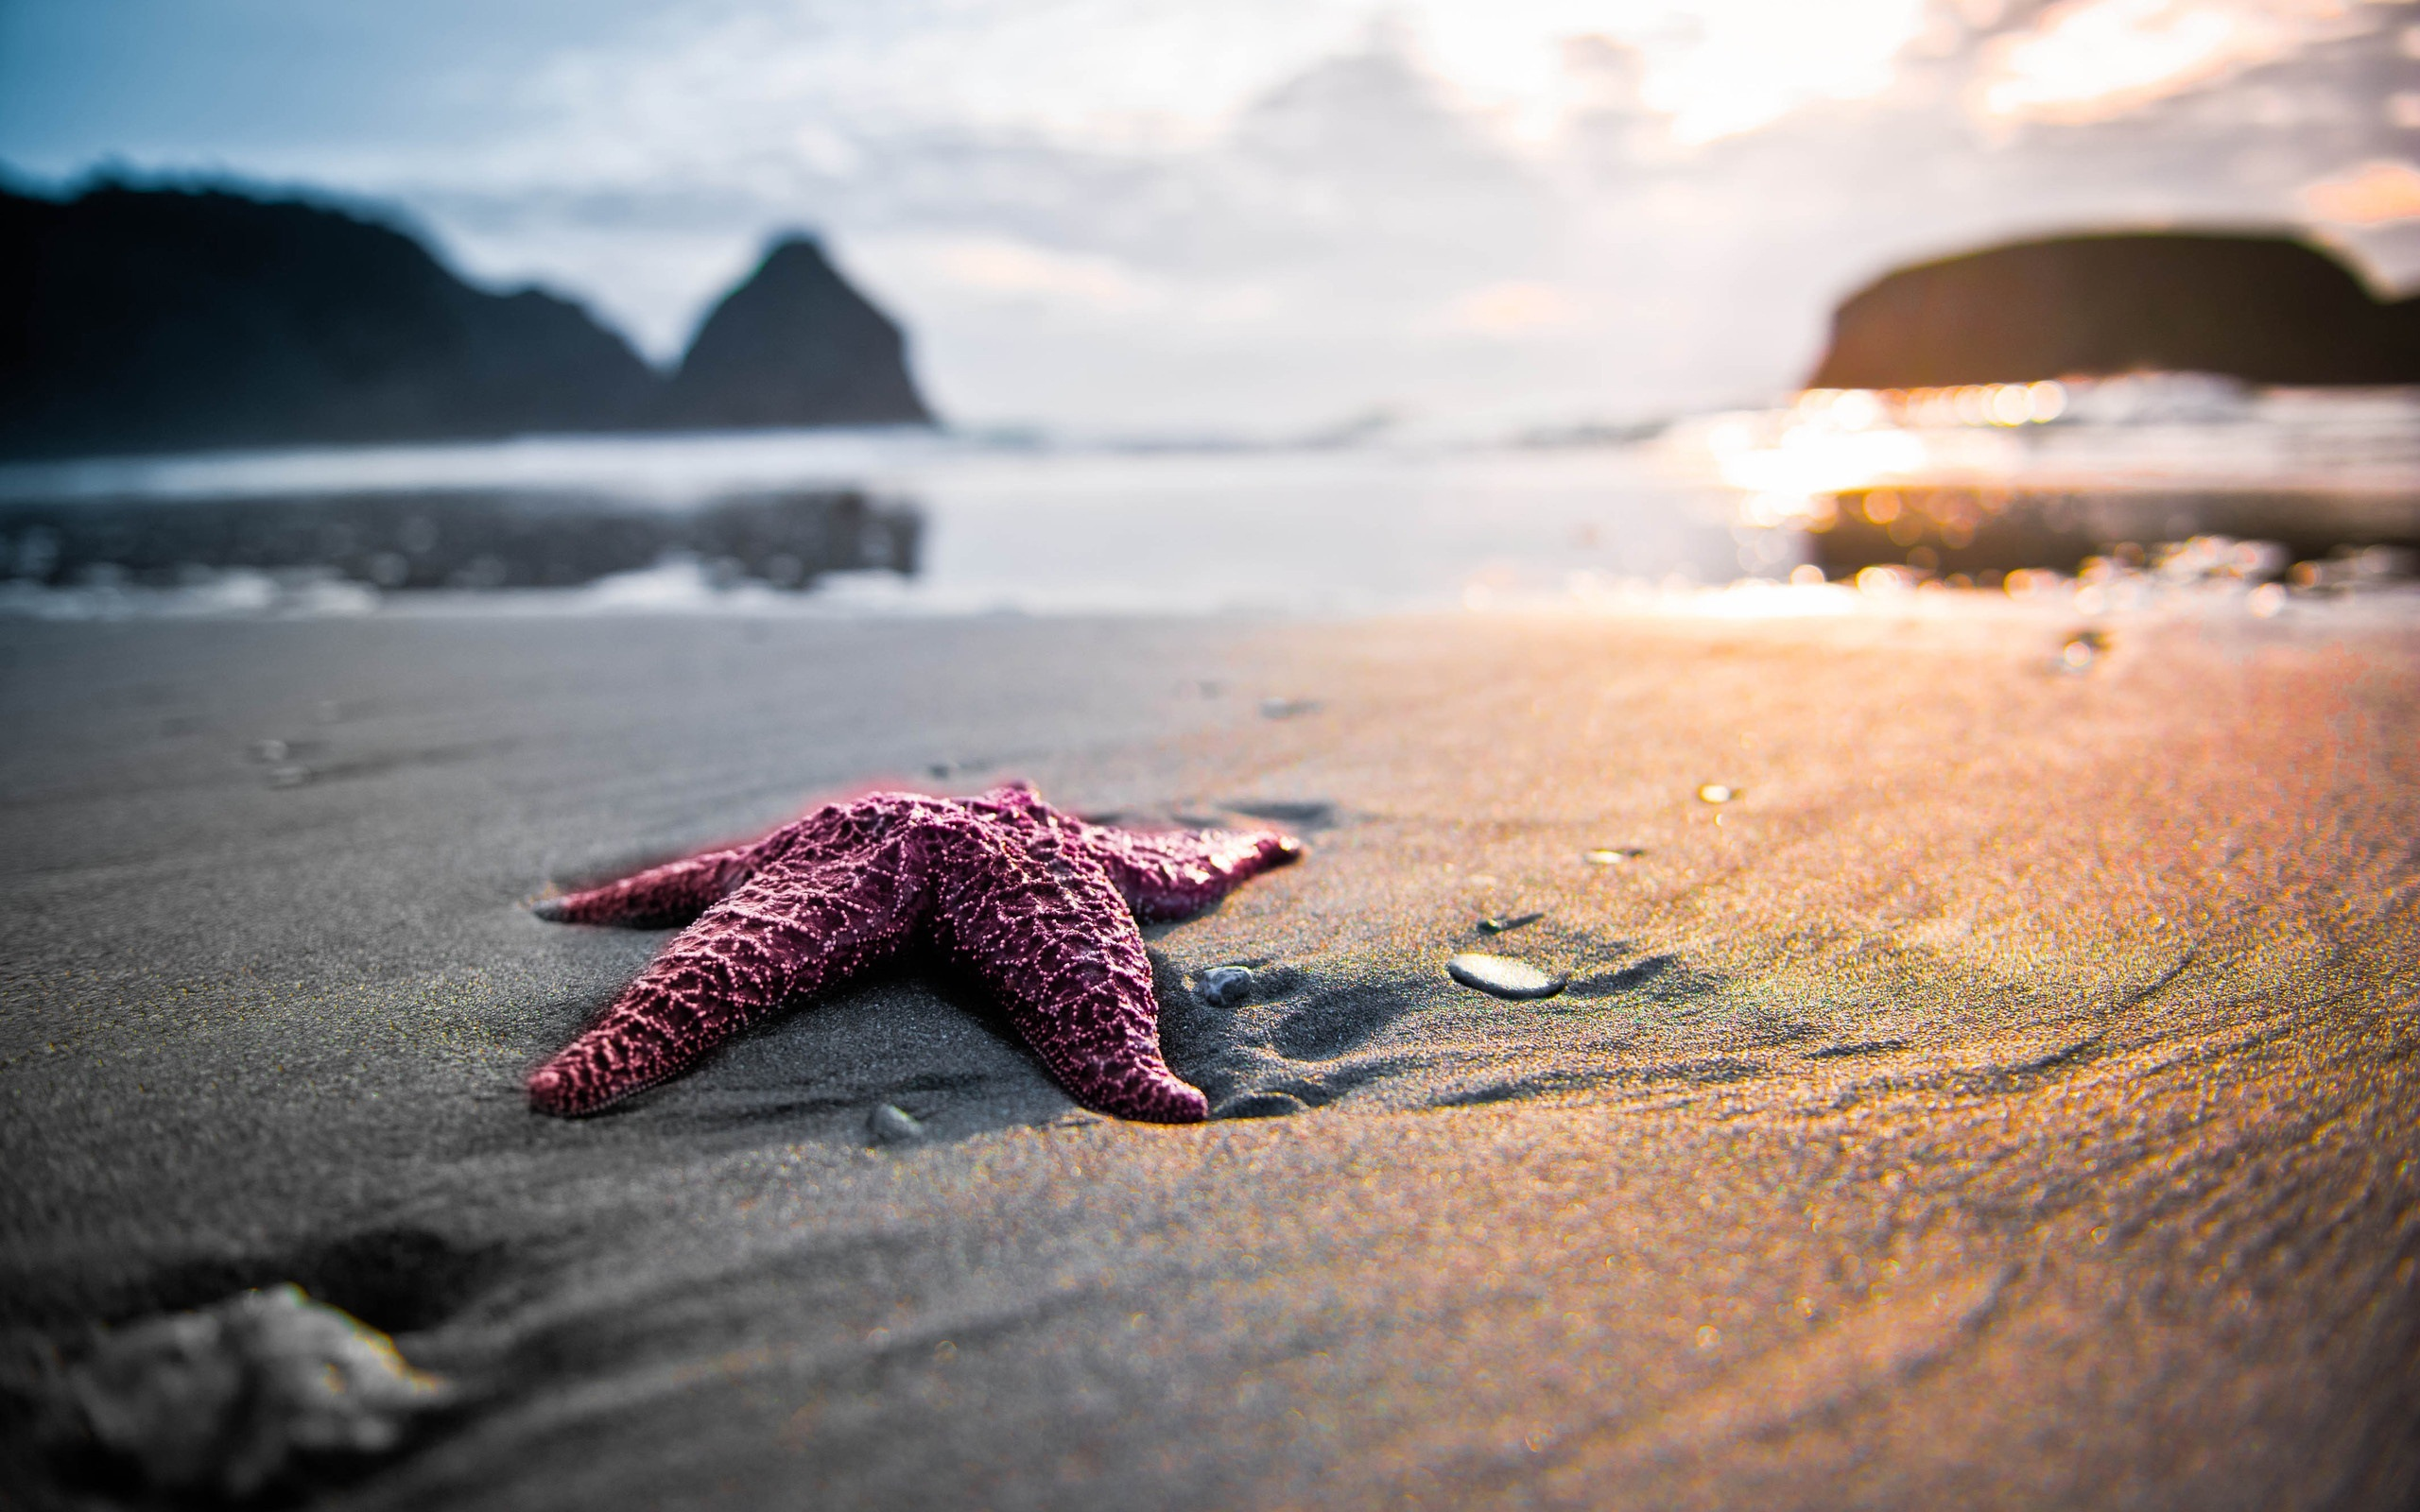 14677 download wallpaper Landscape, Sea, Beach, Starfish screensavers and pictures for free